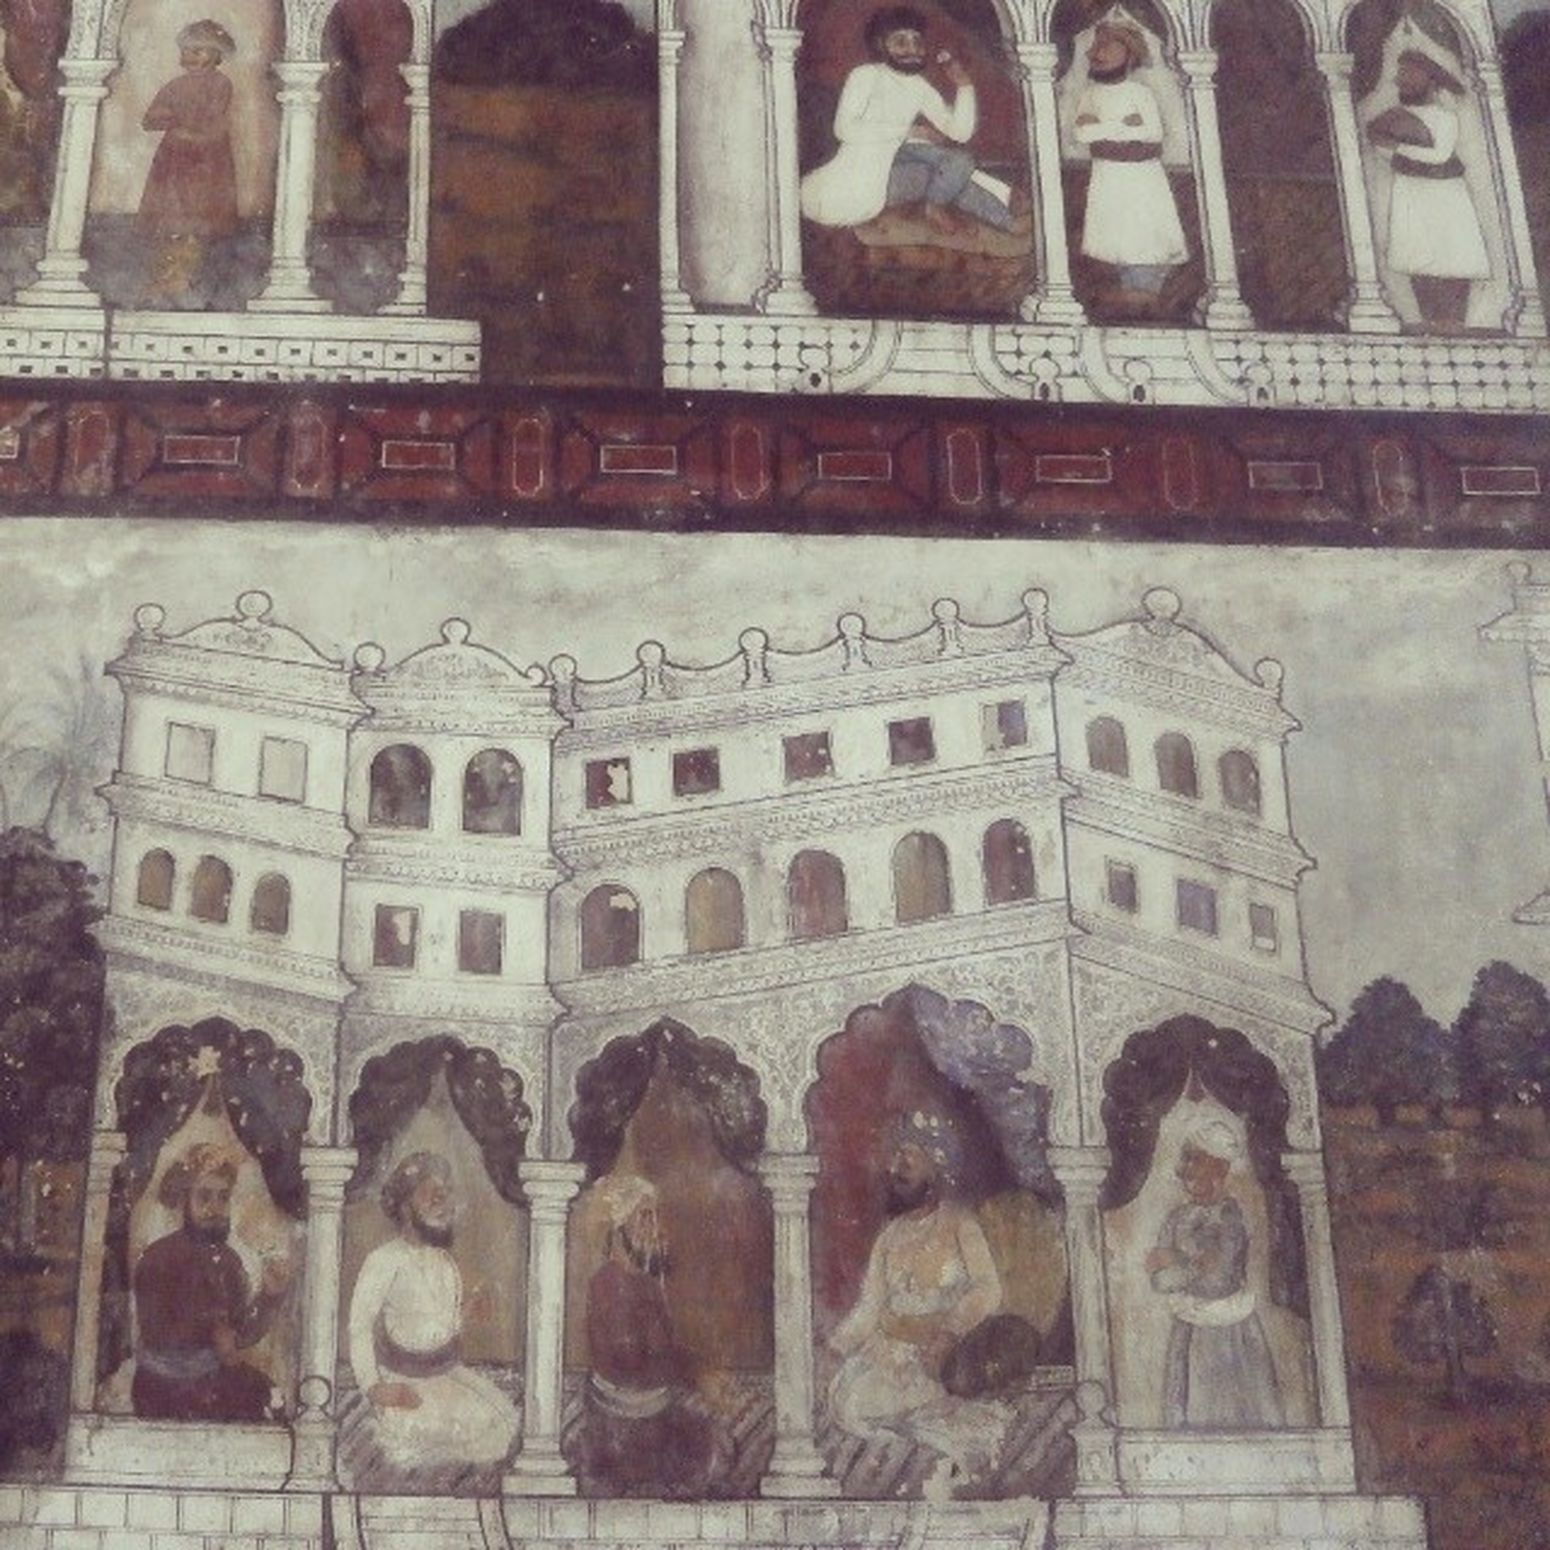 Tipusultan Palace Art on wall